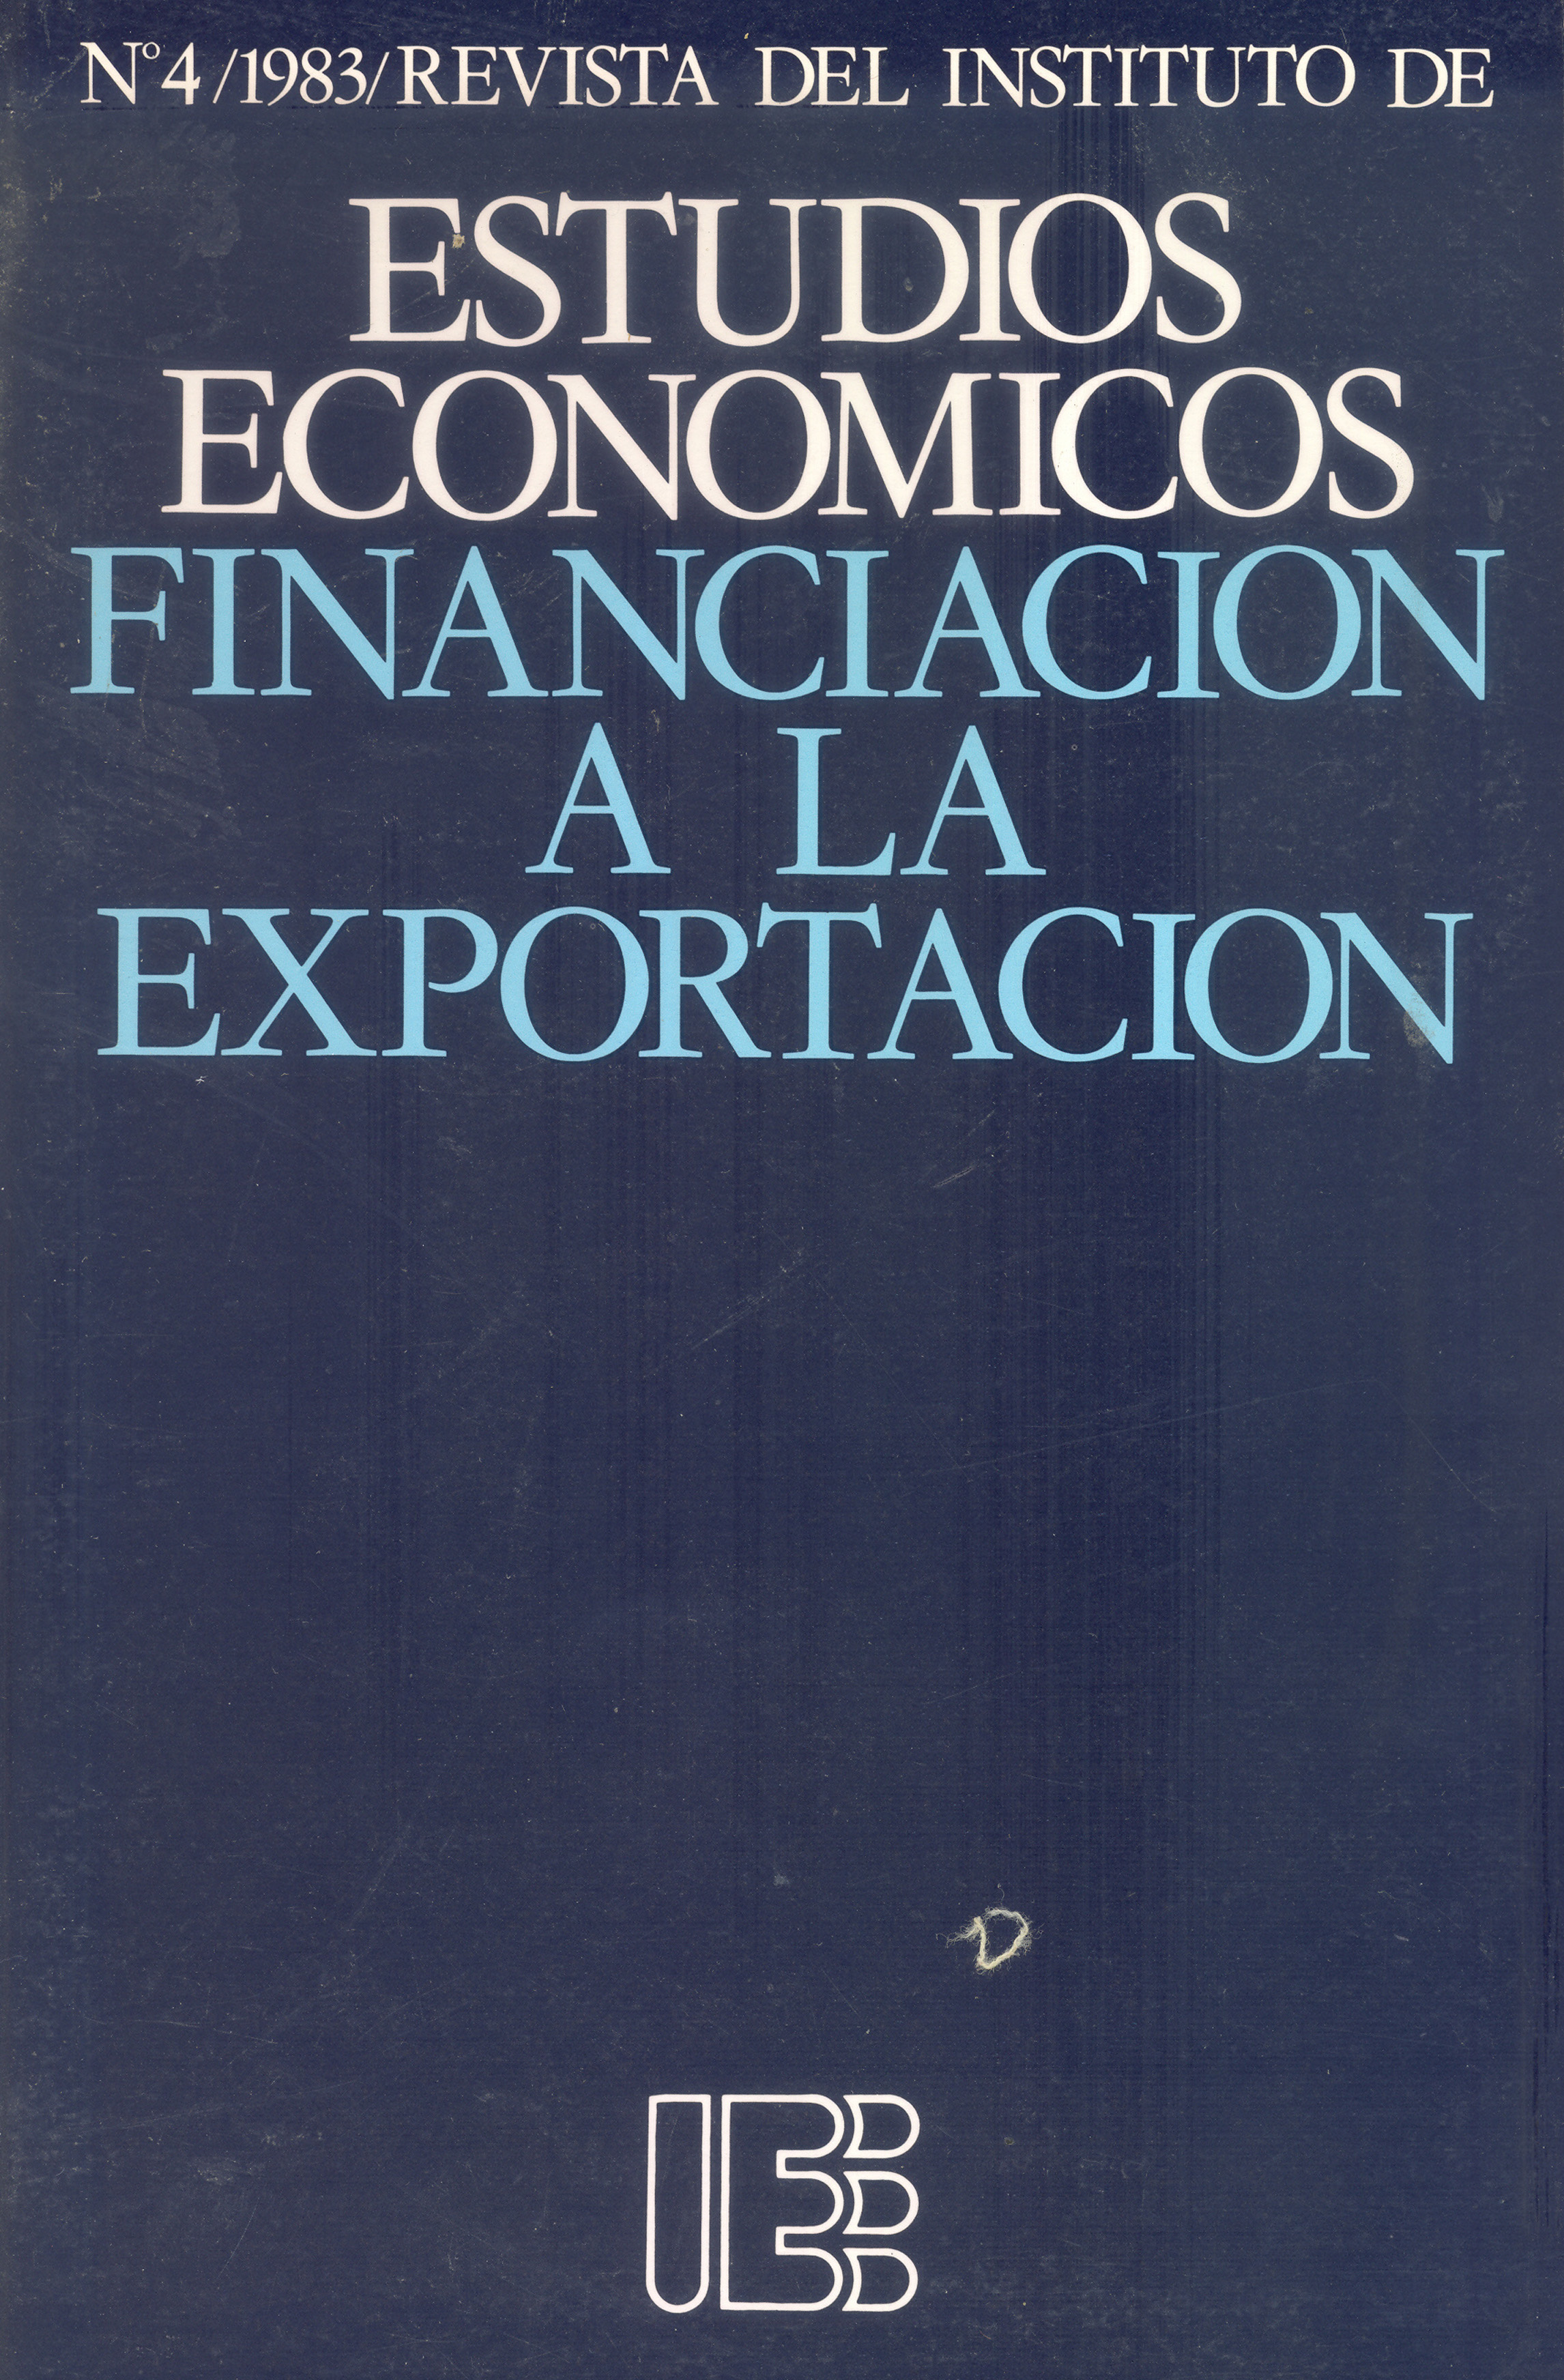 4_financiacion-exportacion1983